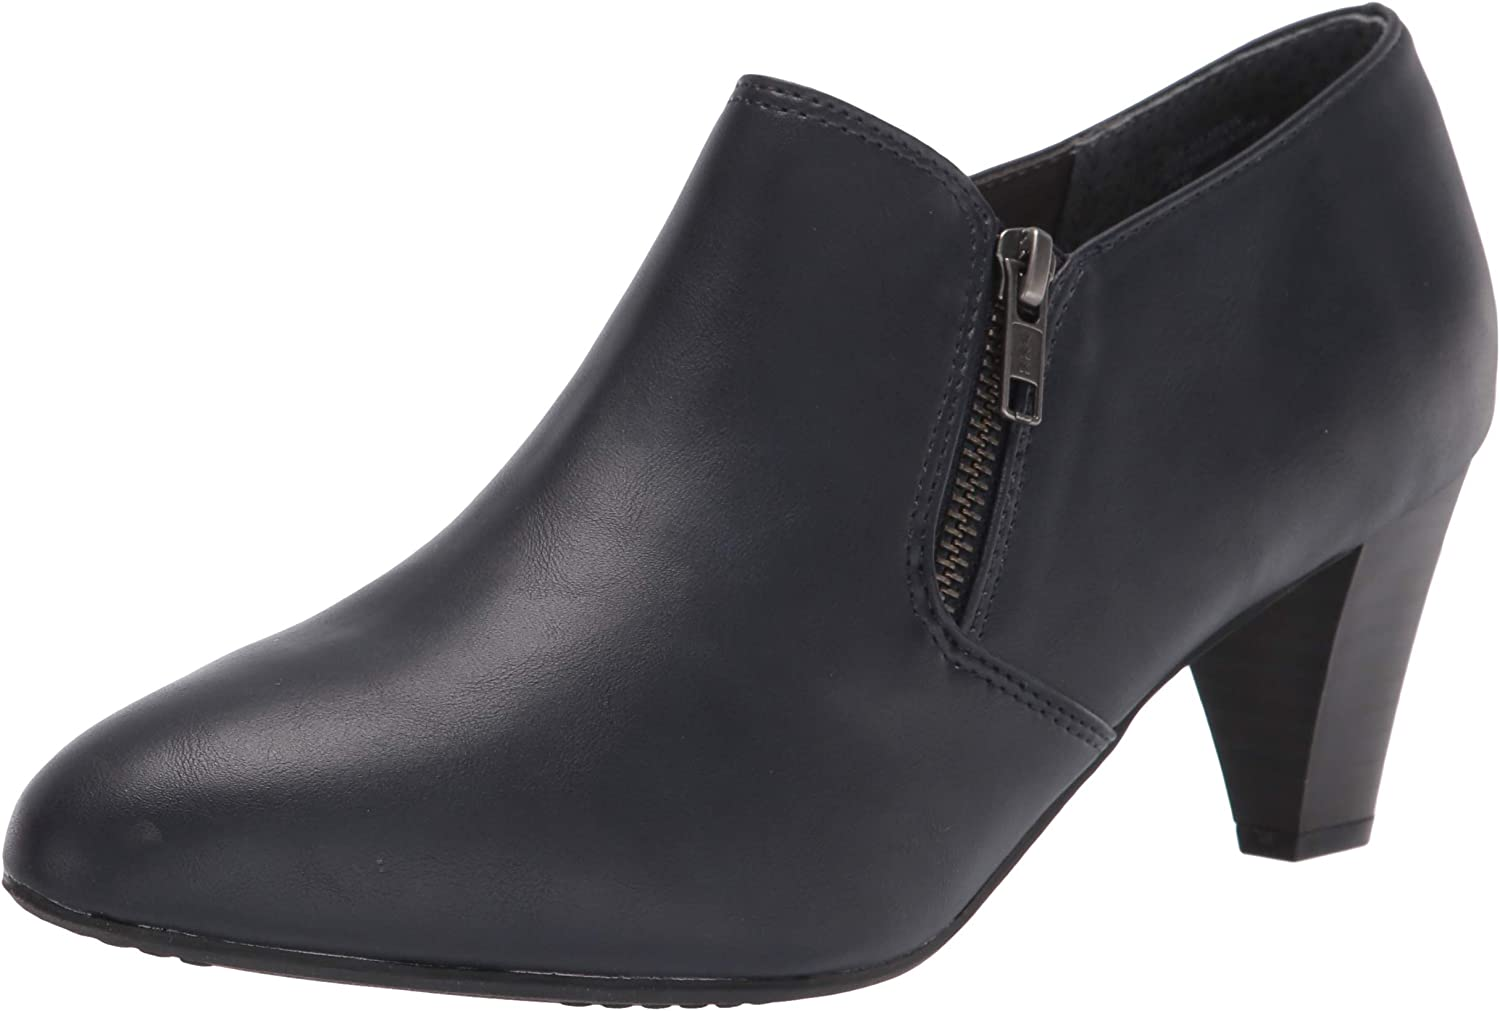 Rialto Women's Finally popular brand Sarina Navy Smooth Size Wide 5% OFF Ankle 10 Boot 10W